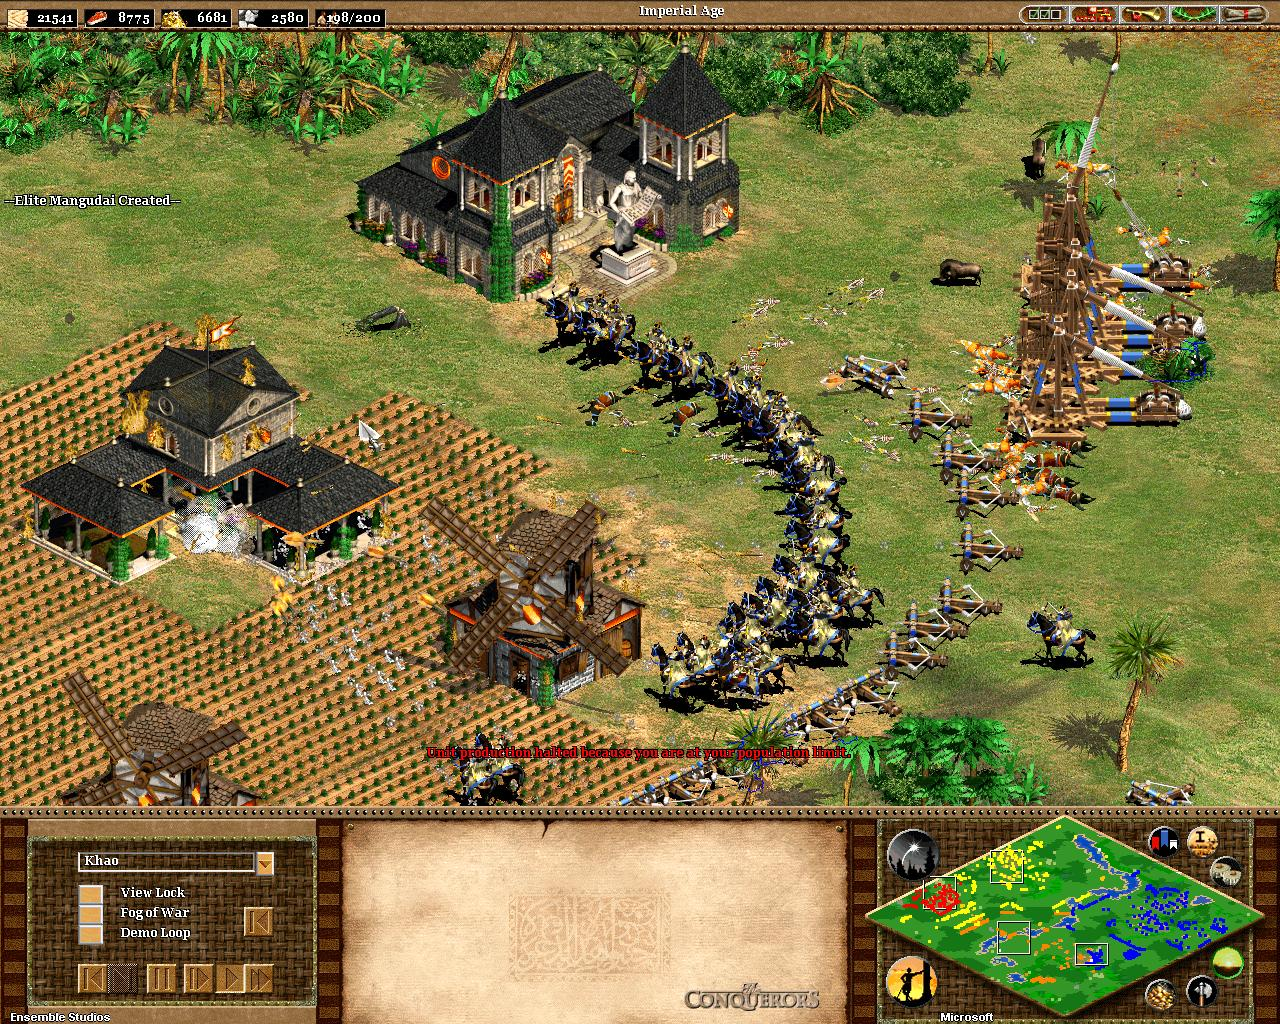 Age Of Empires 2 Pc Game Highly Compressed For Just 148 Mb